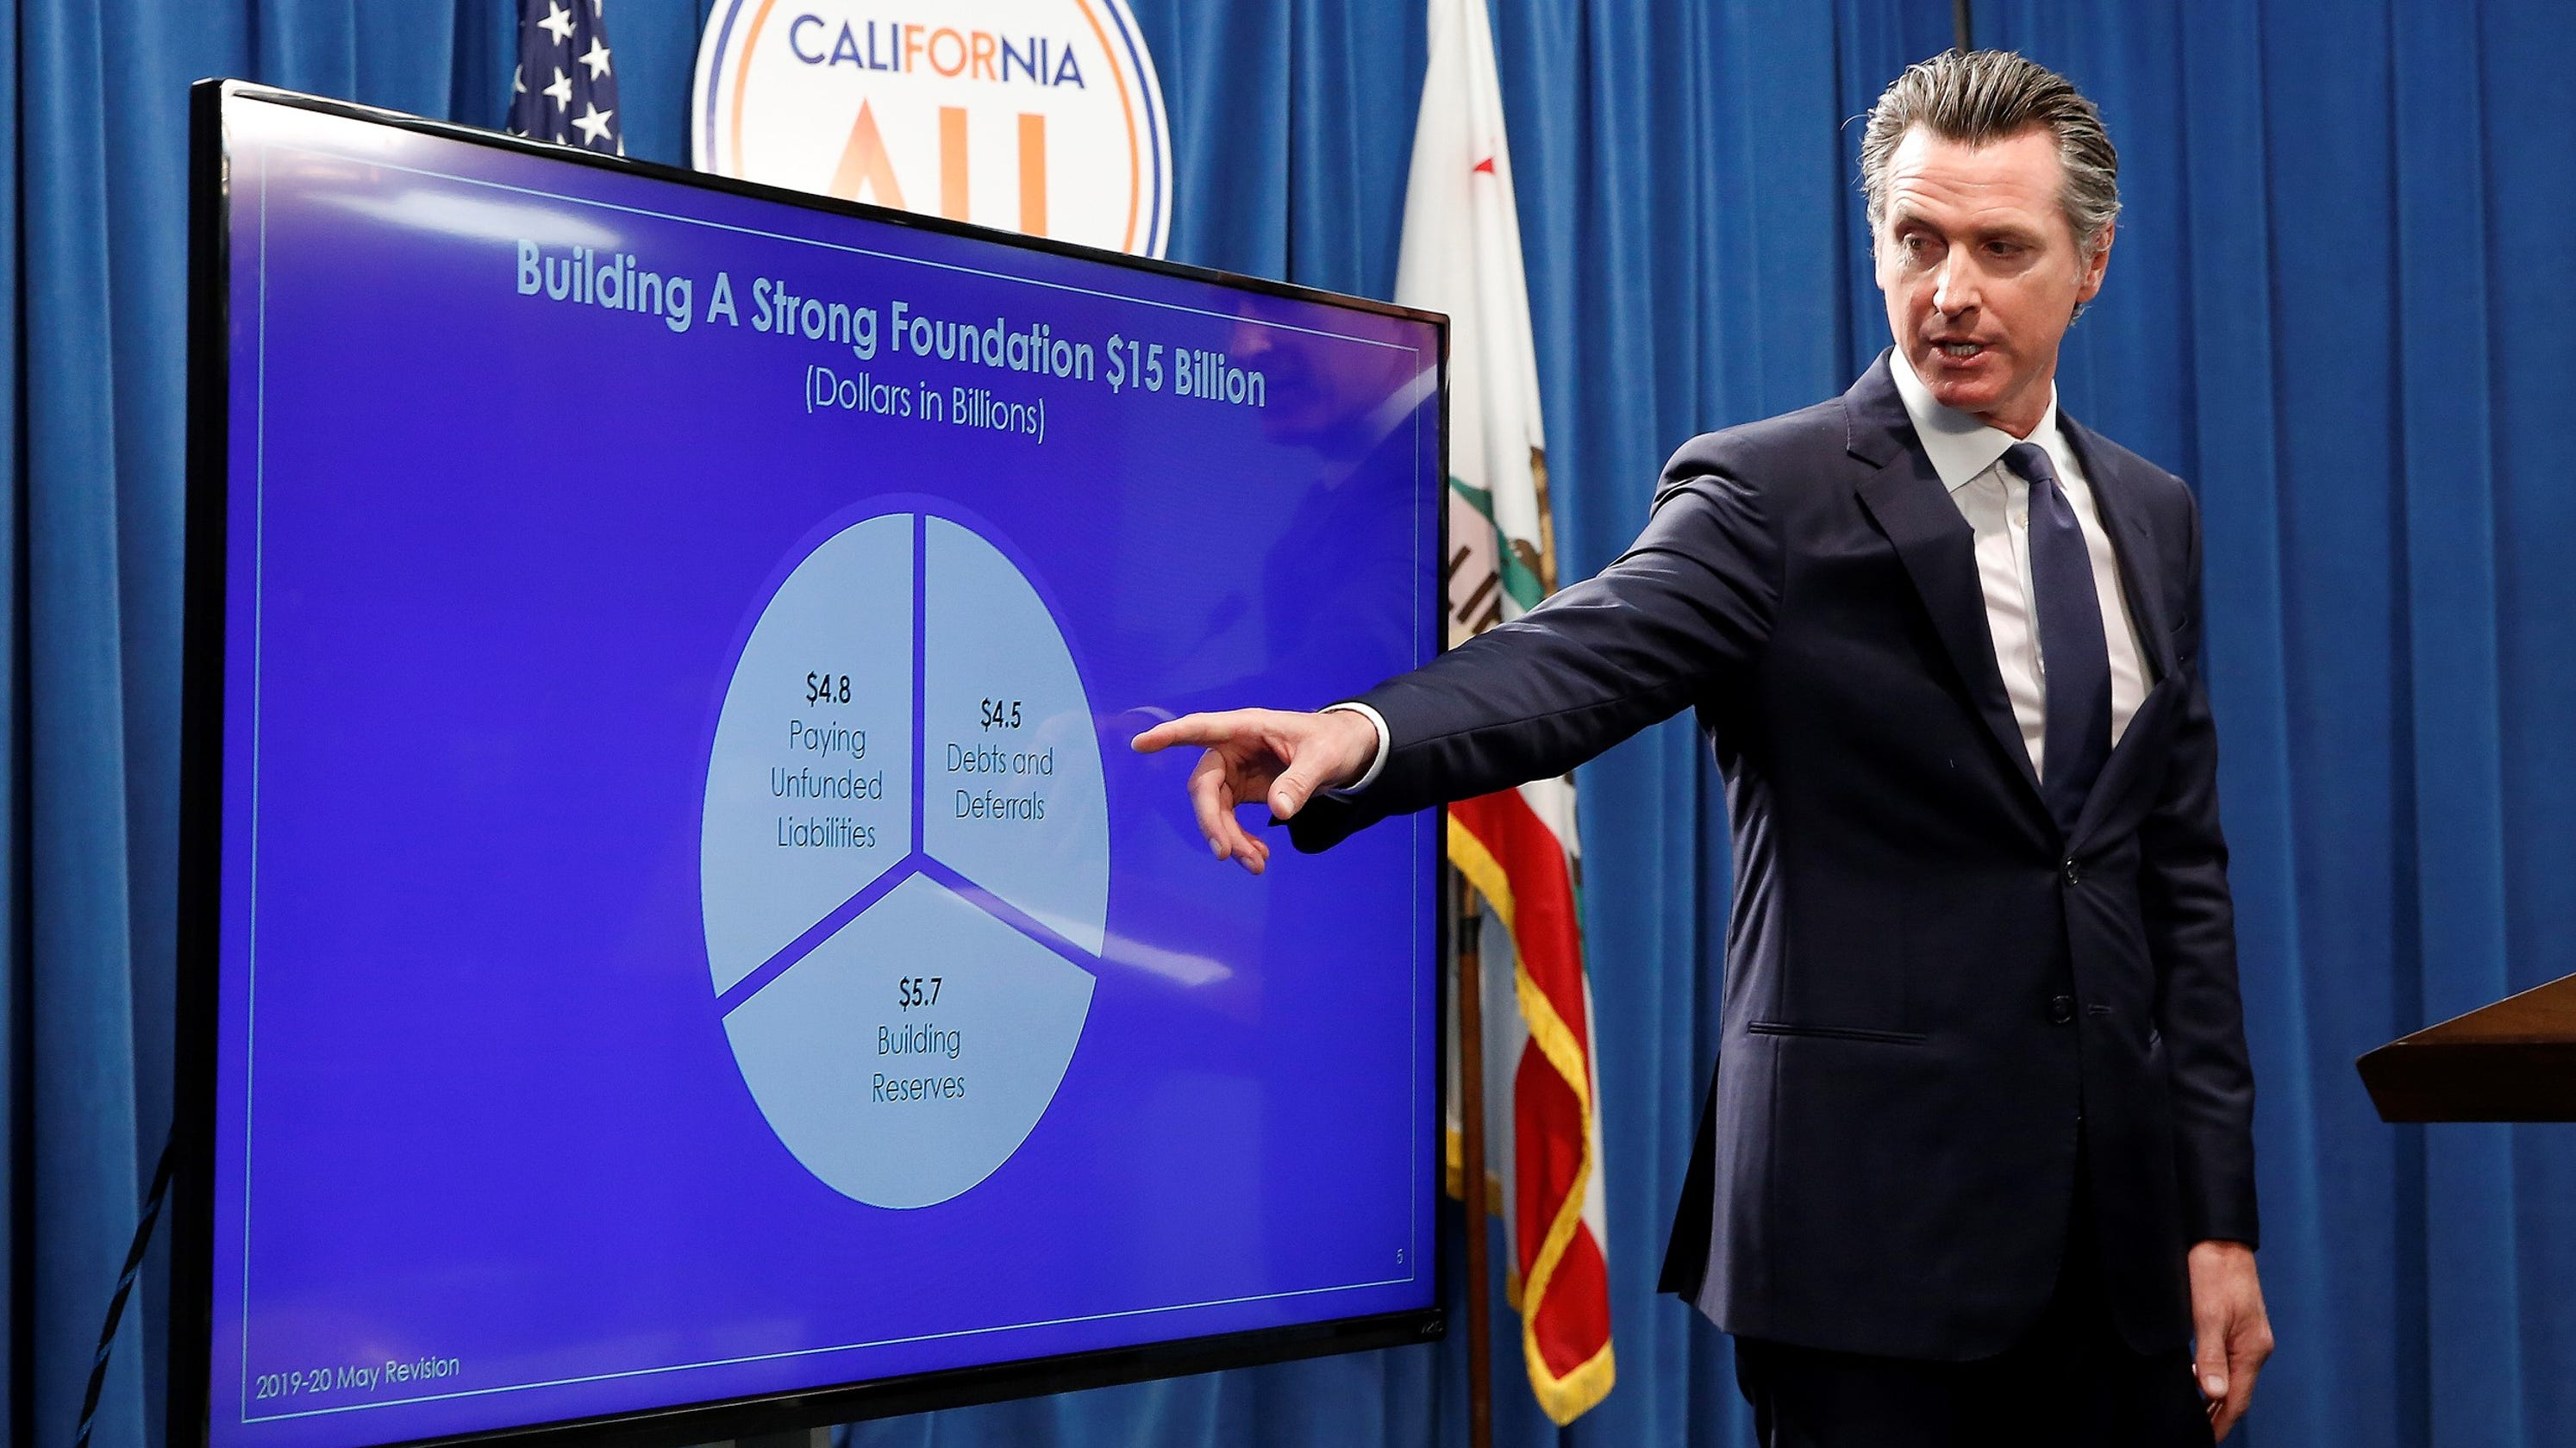 Teaching Child To Wrangle Not Reject >> California Governor Lawmakers Wrangle Over Budget Details